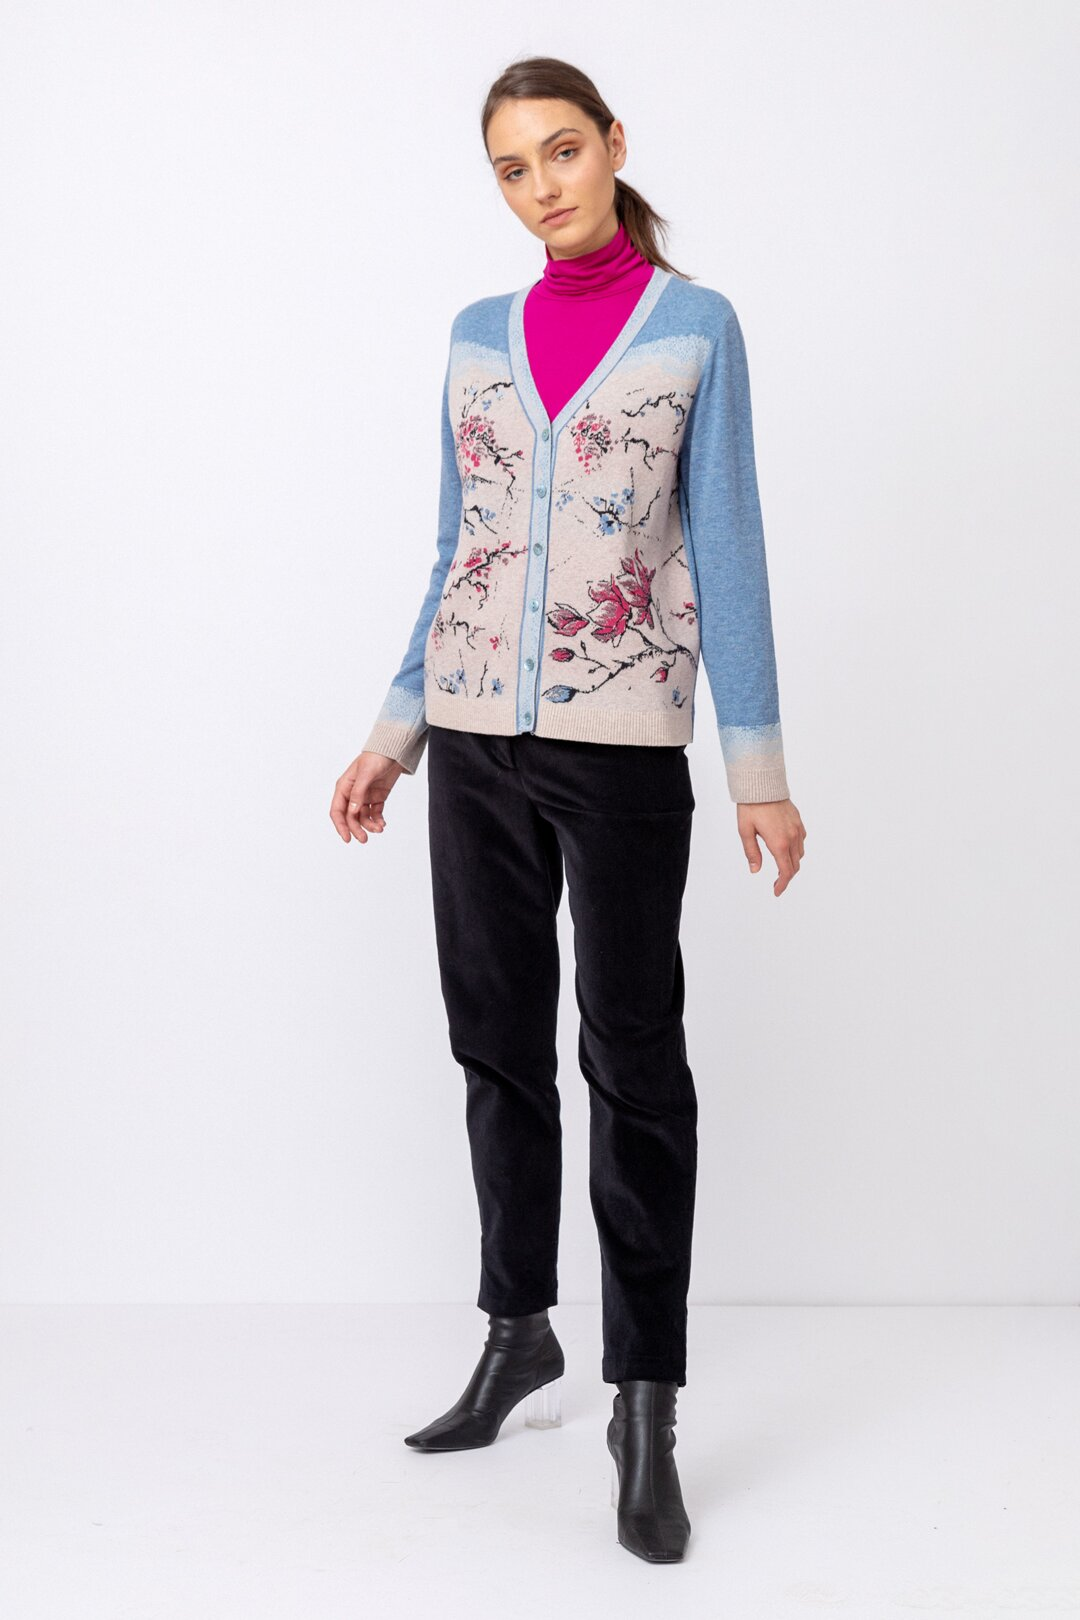 outfit-7c8a8897